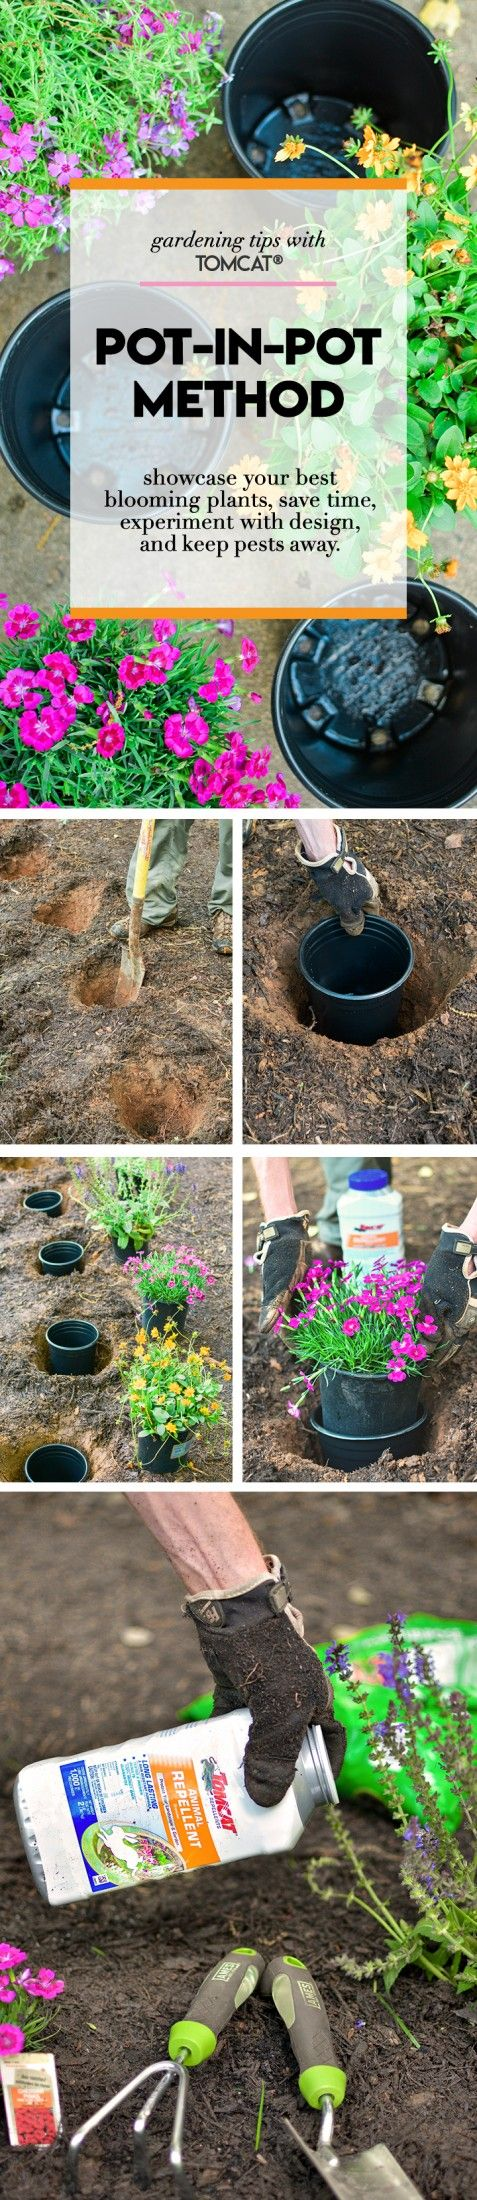 Create beautiful blooming flower beds by utilizing the Pot-in-Pot method. It's...